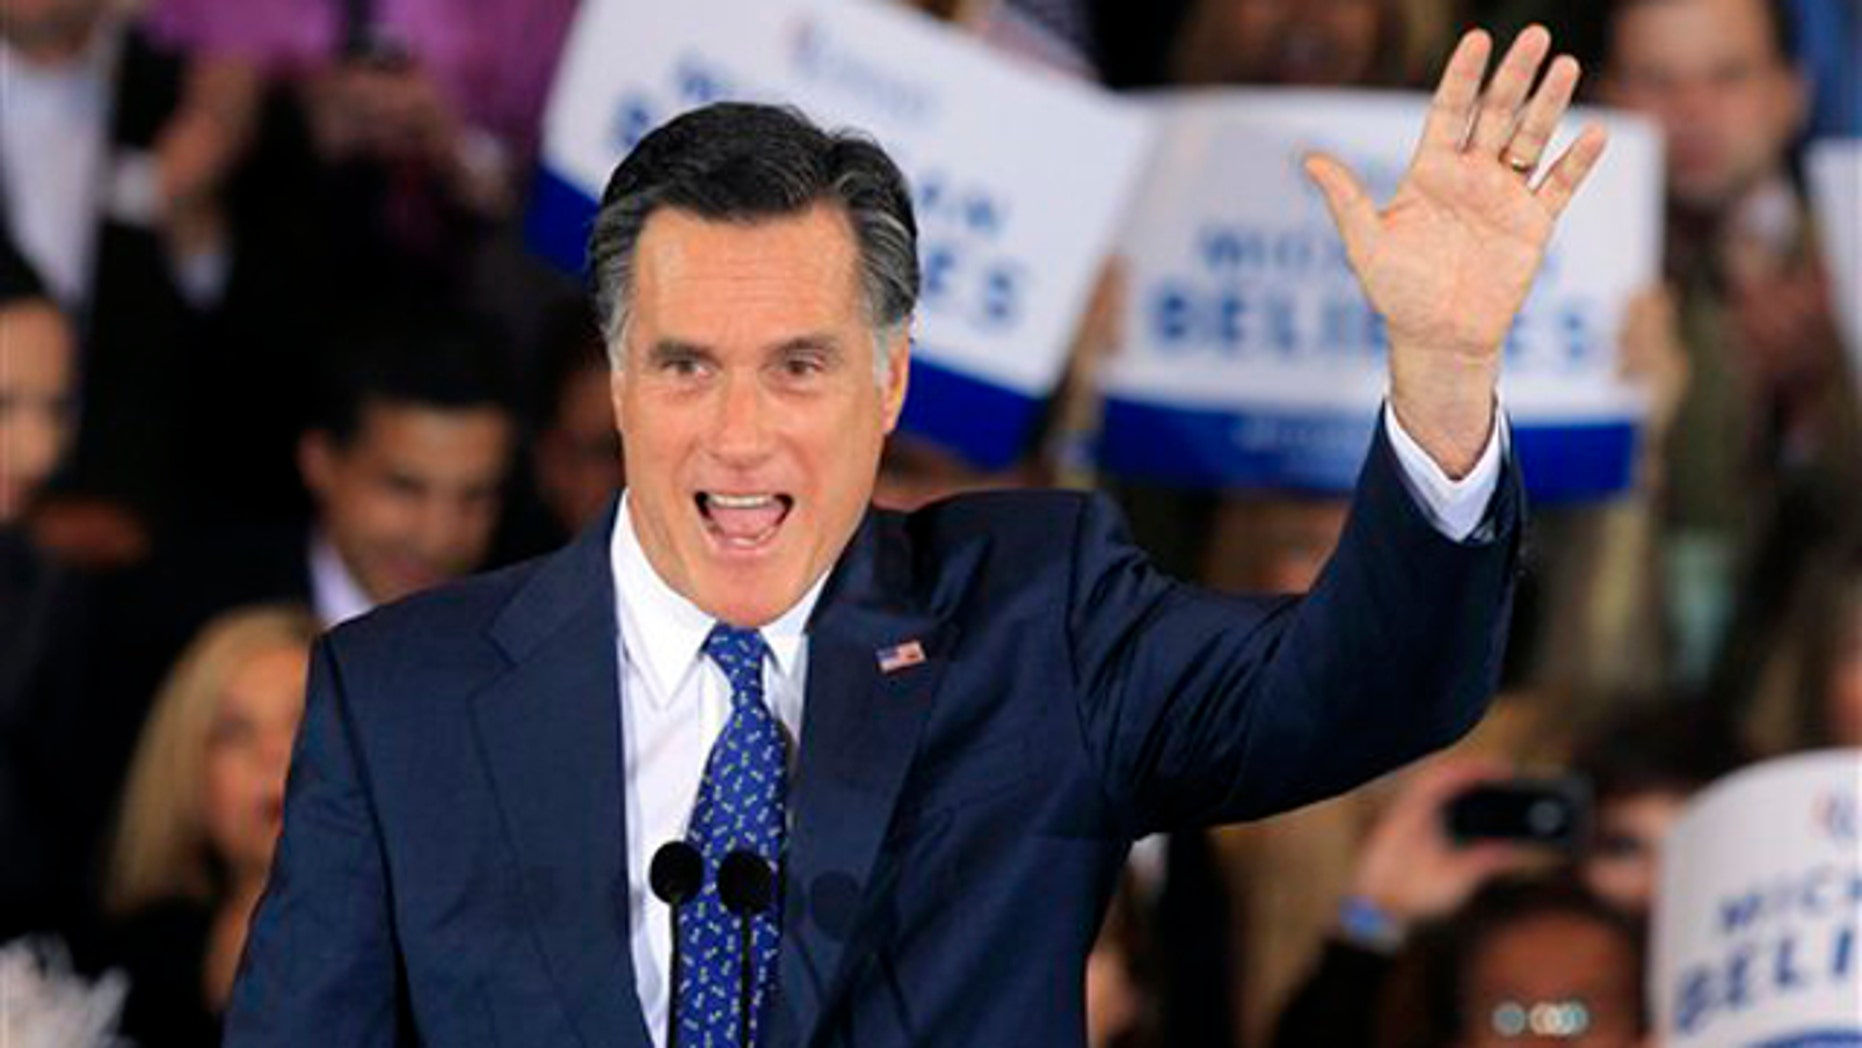 Feb. 28, 2012: Mitt Romney waves at his election night party in Novi, Mich.